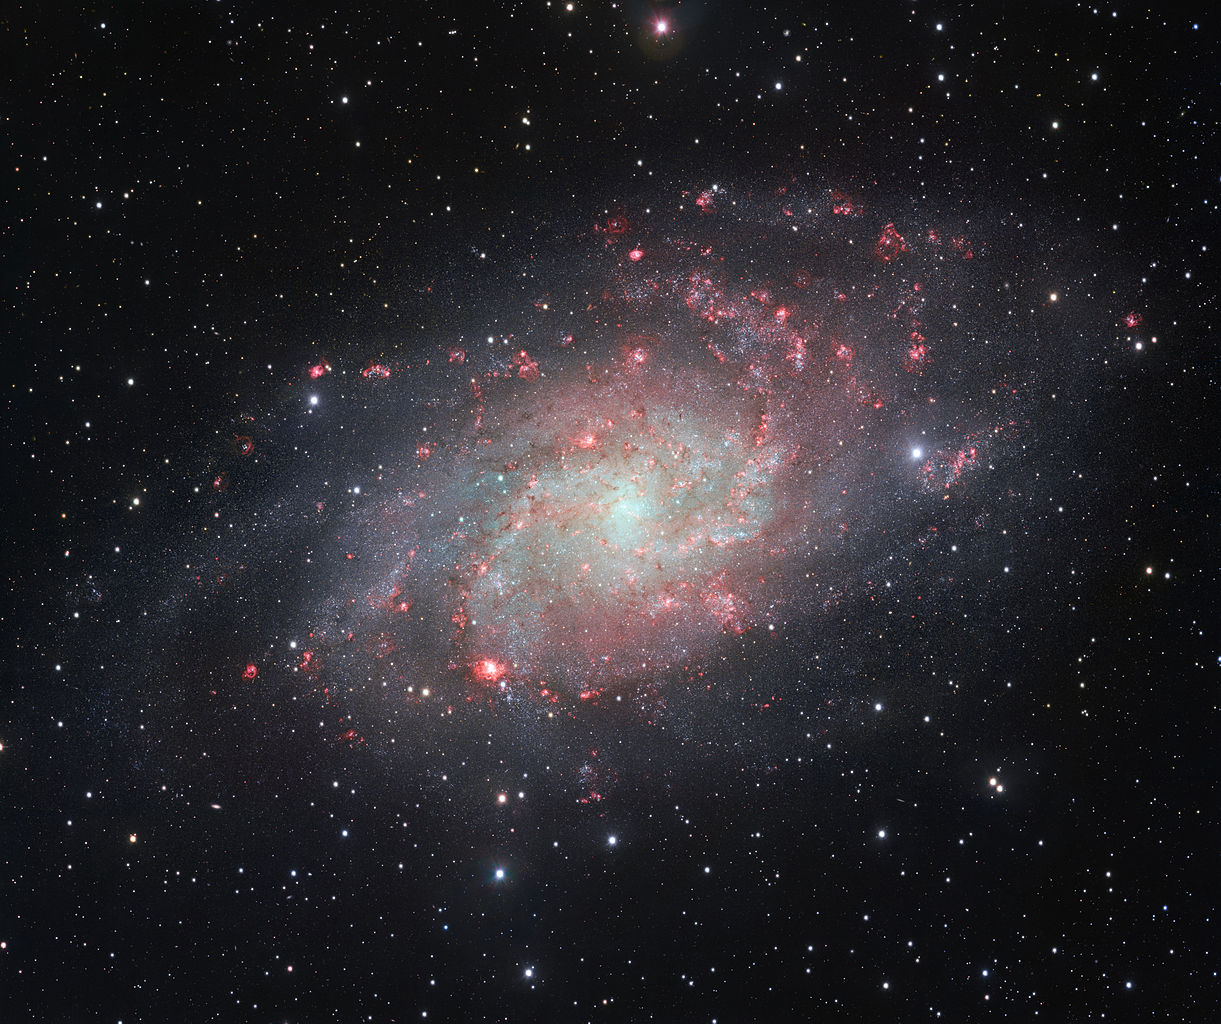 triangulum galaxy,messier 33